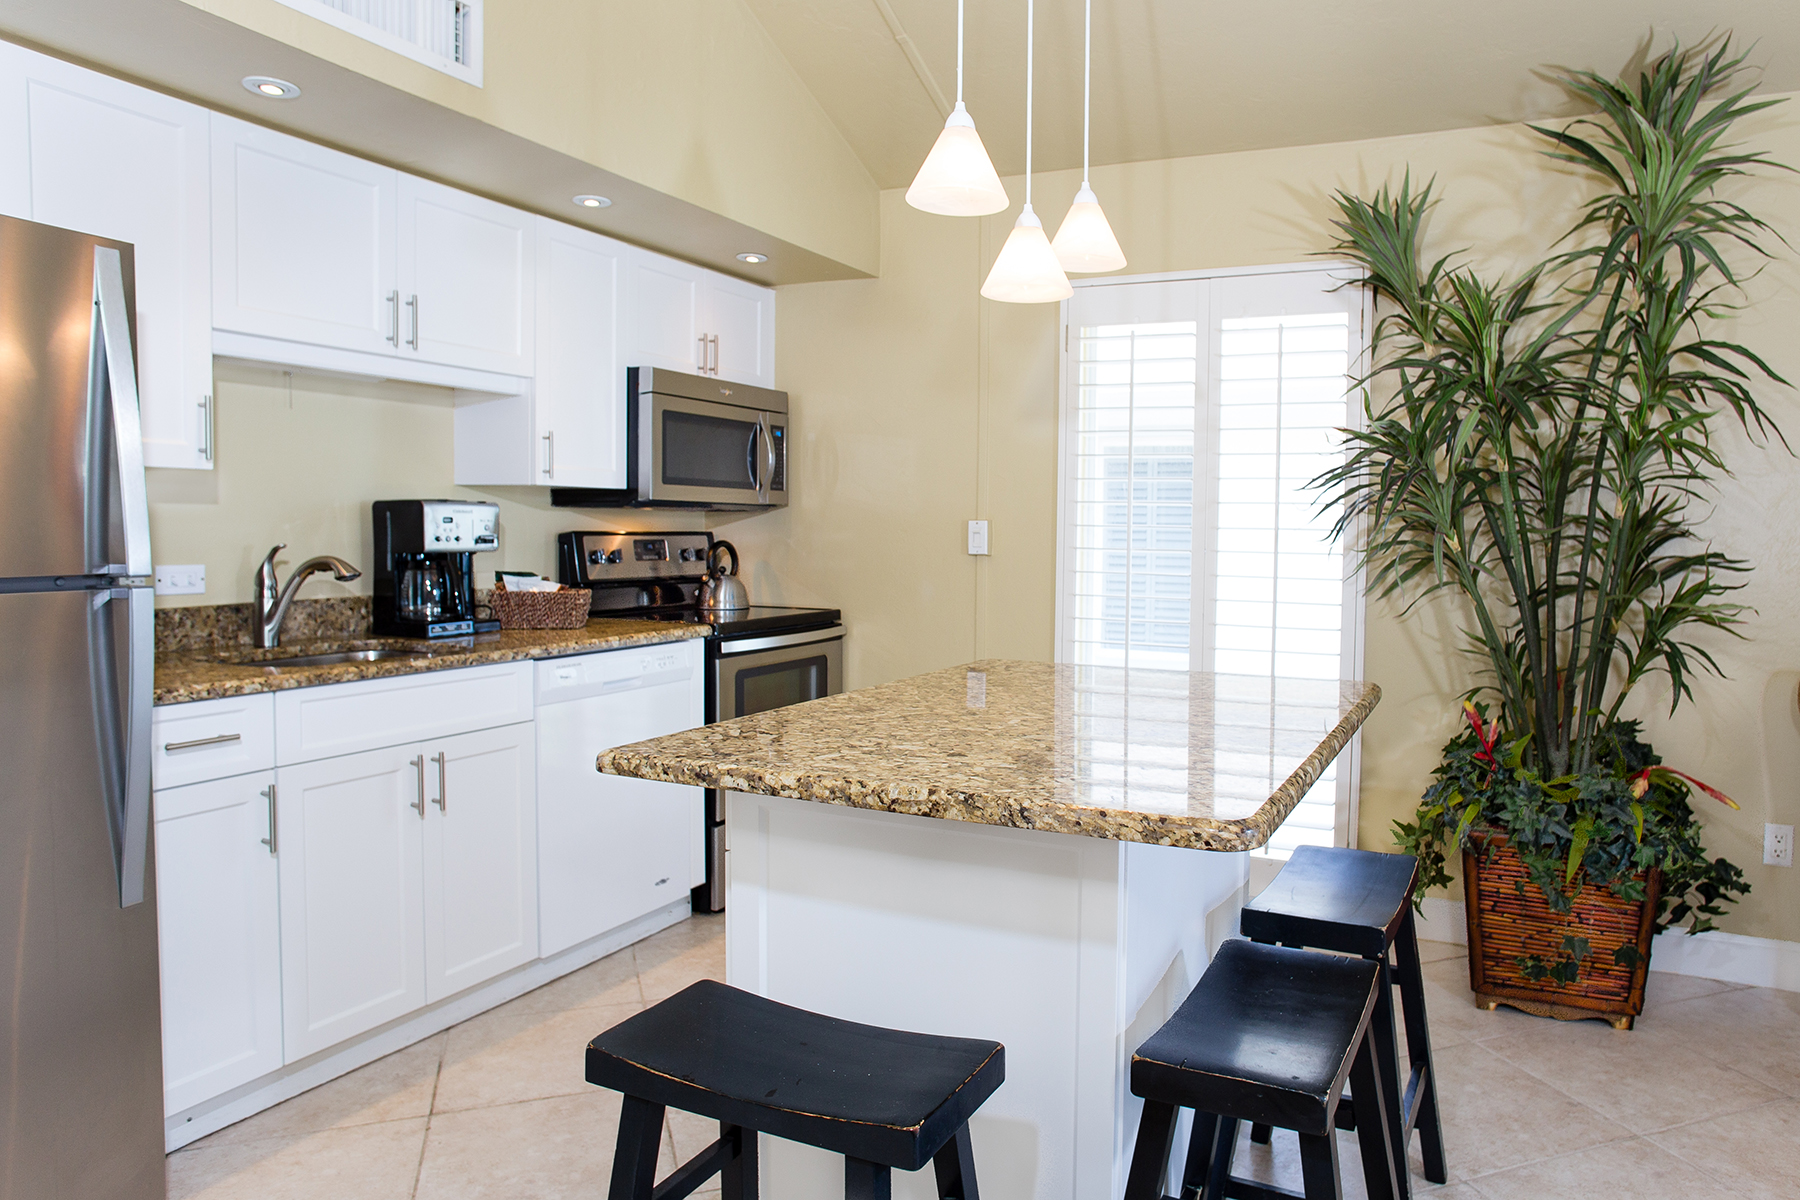 Additional photo for property listing at SANIBEL 2255 W Gulf Dr 116,  Sanibel, Florida 33957 United States